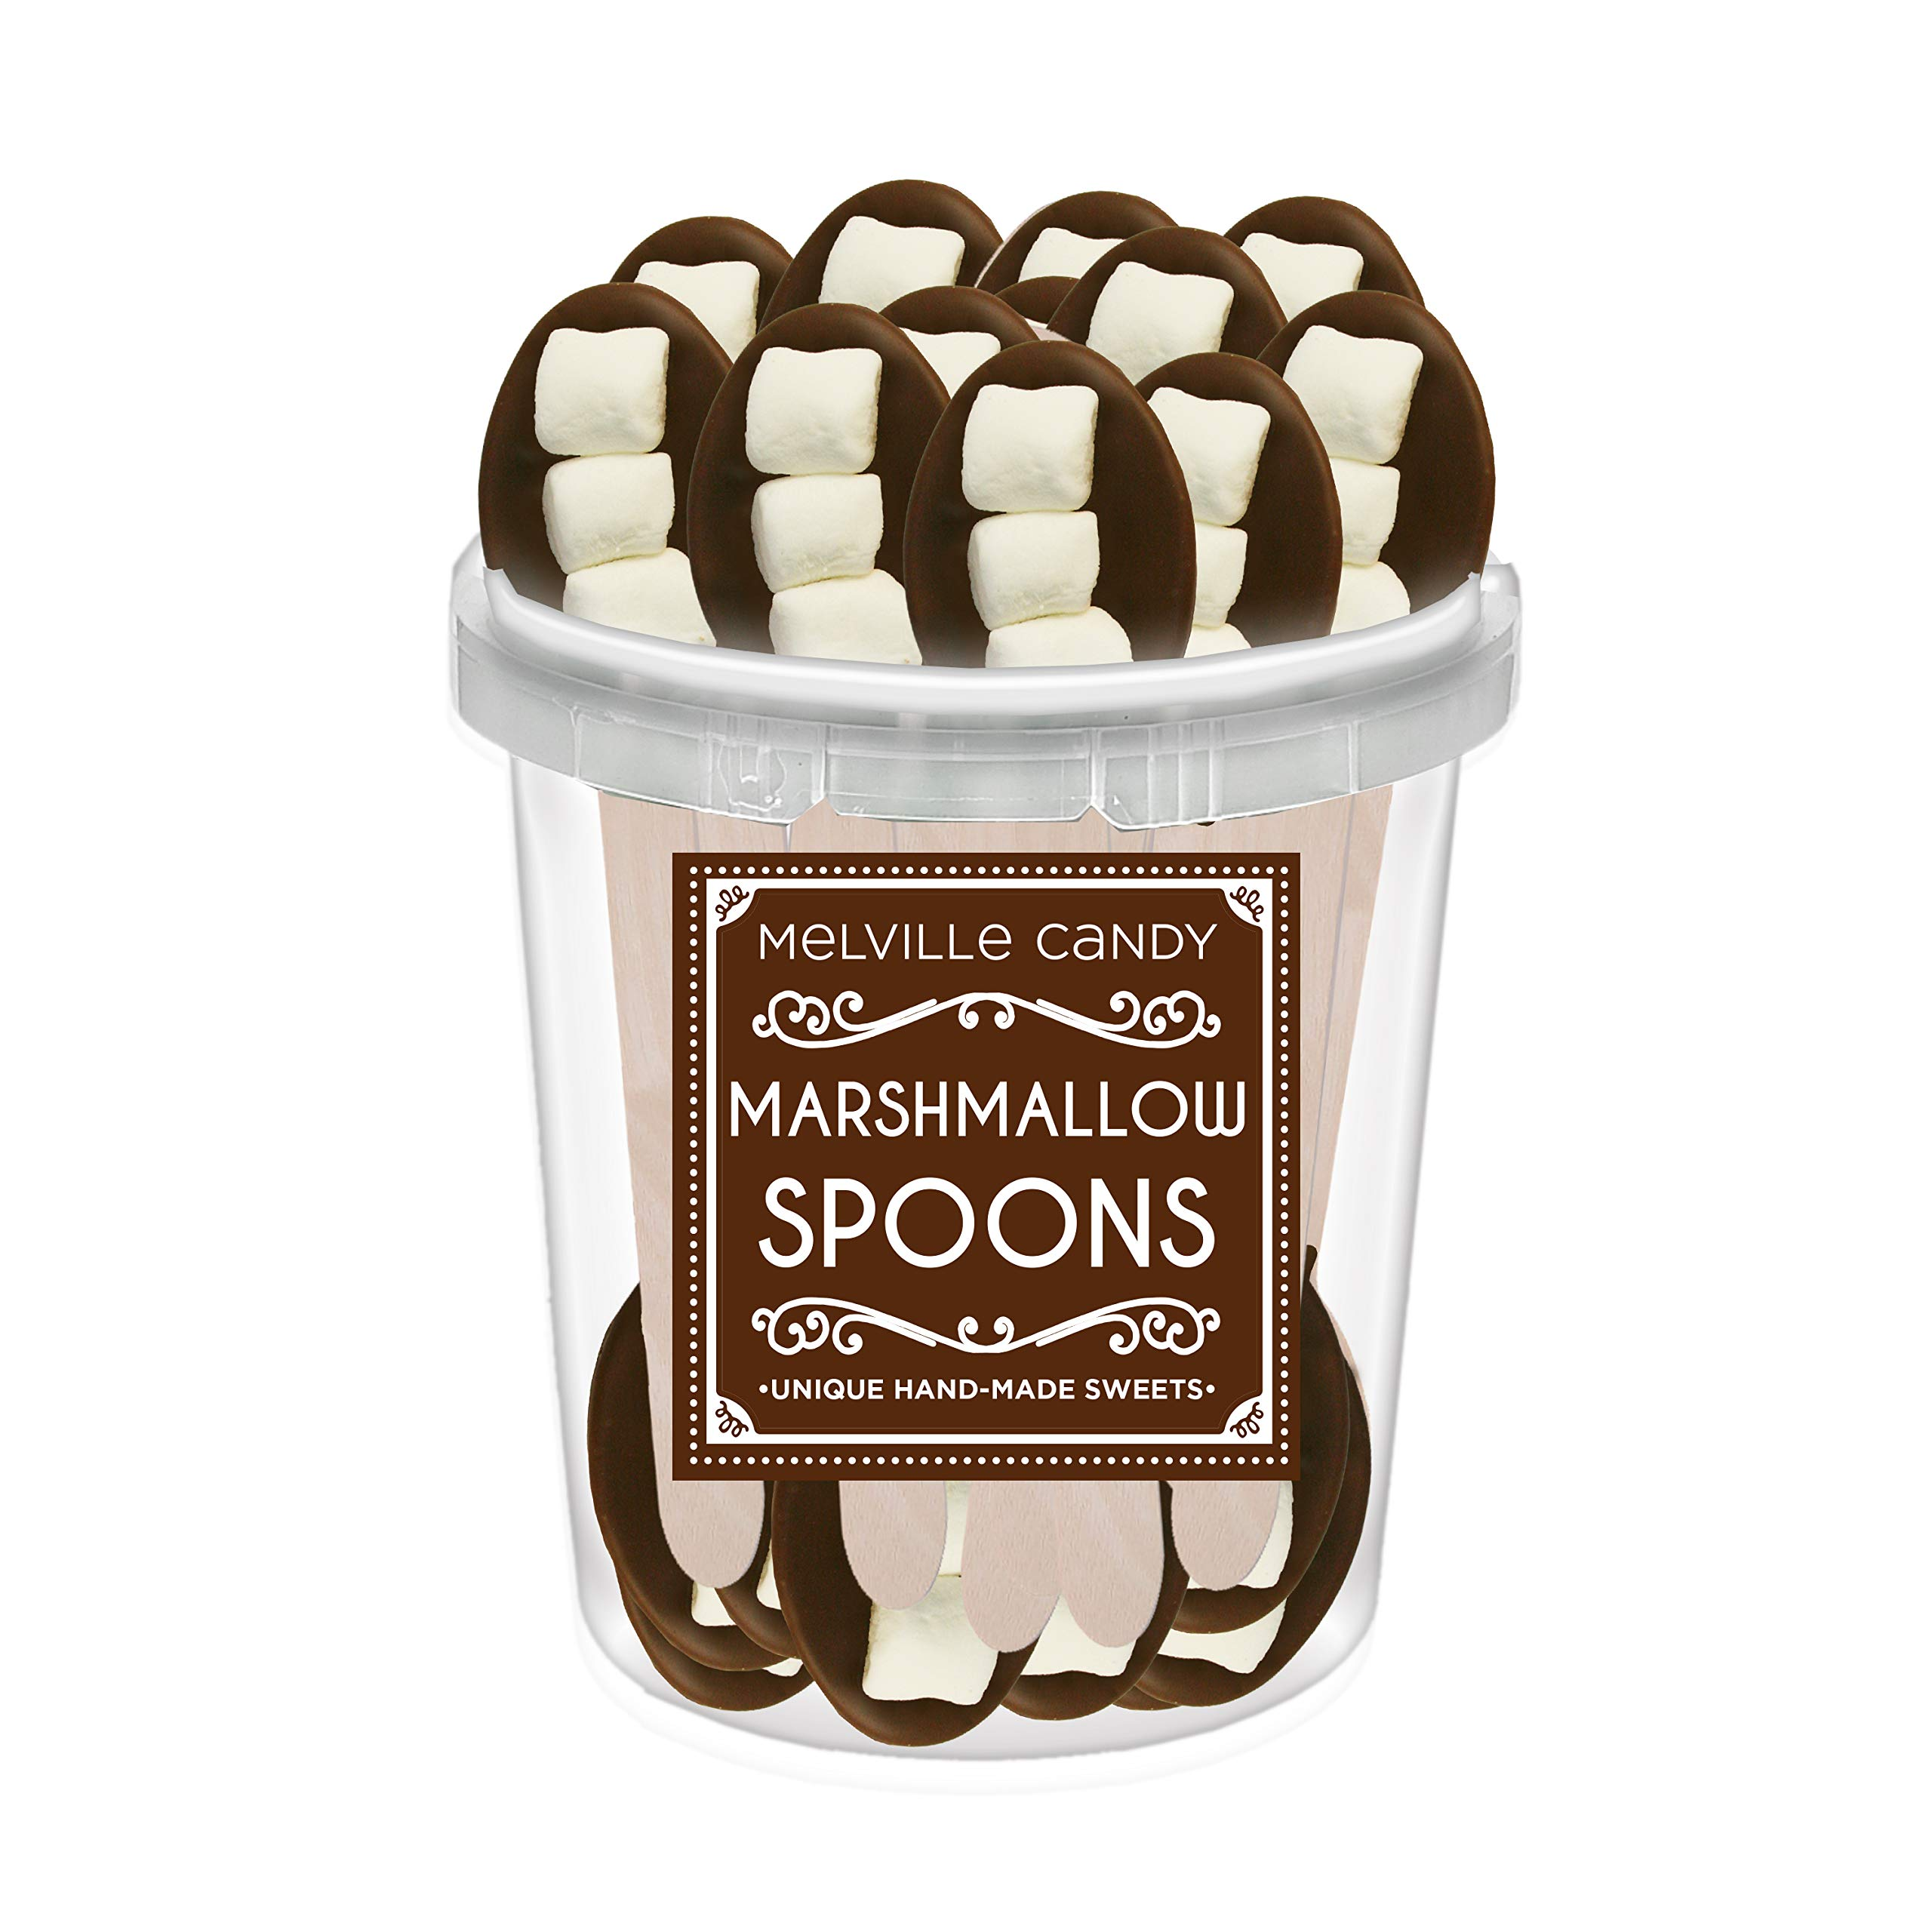 Chocolate Dipped Spoon With Three Jet Puffed Marshmallows (30 Ct) by Melville Candy